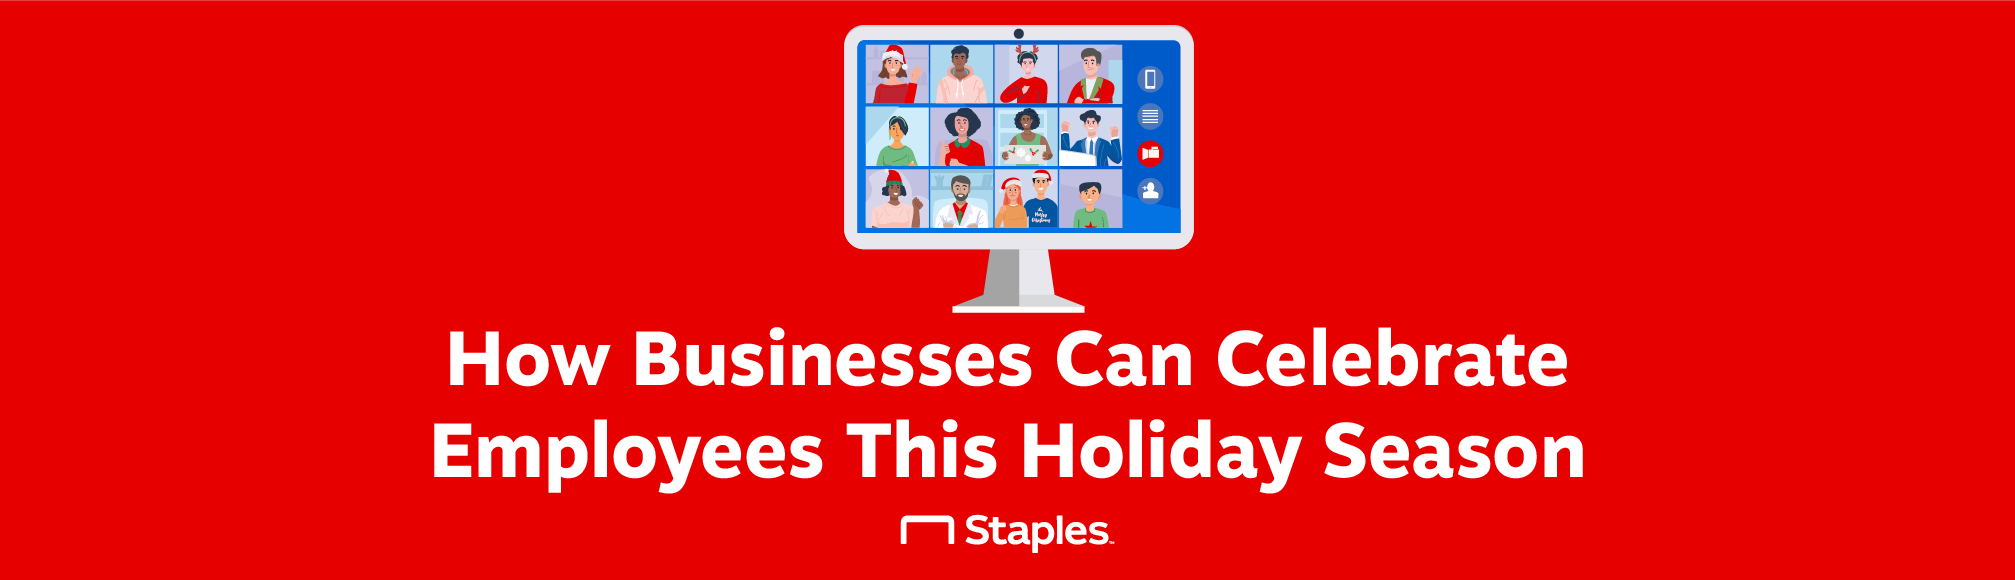 A title graphic introducing ways that businesses can celebrate employees this holiday season.